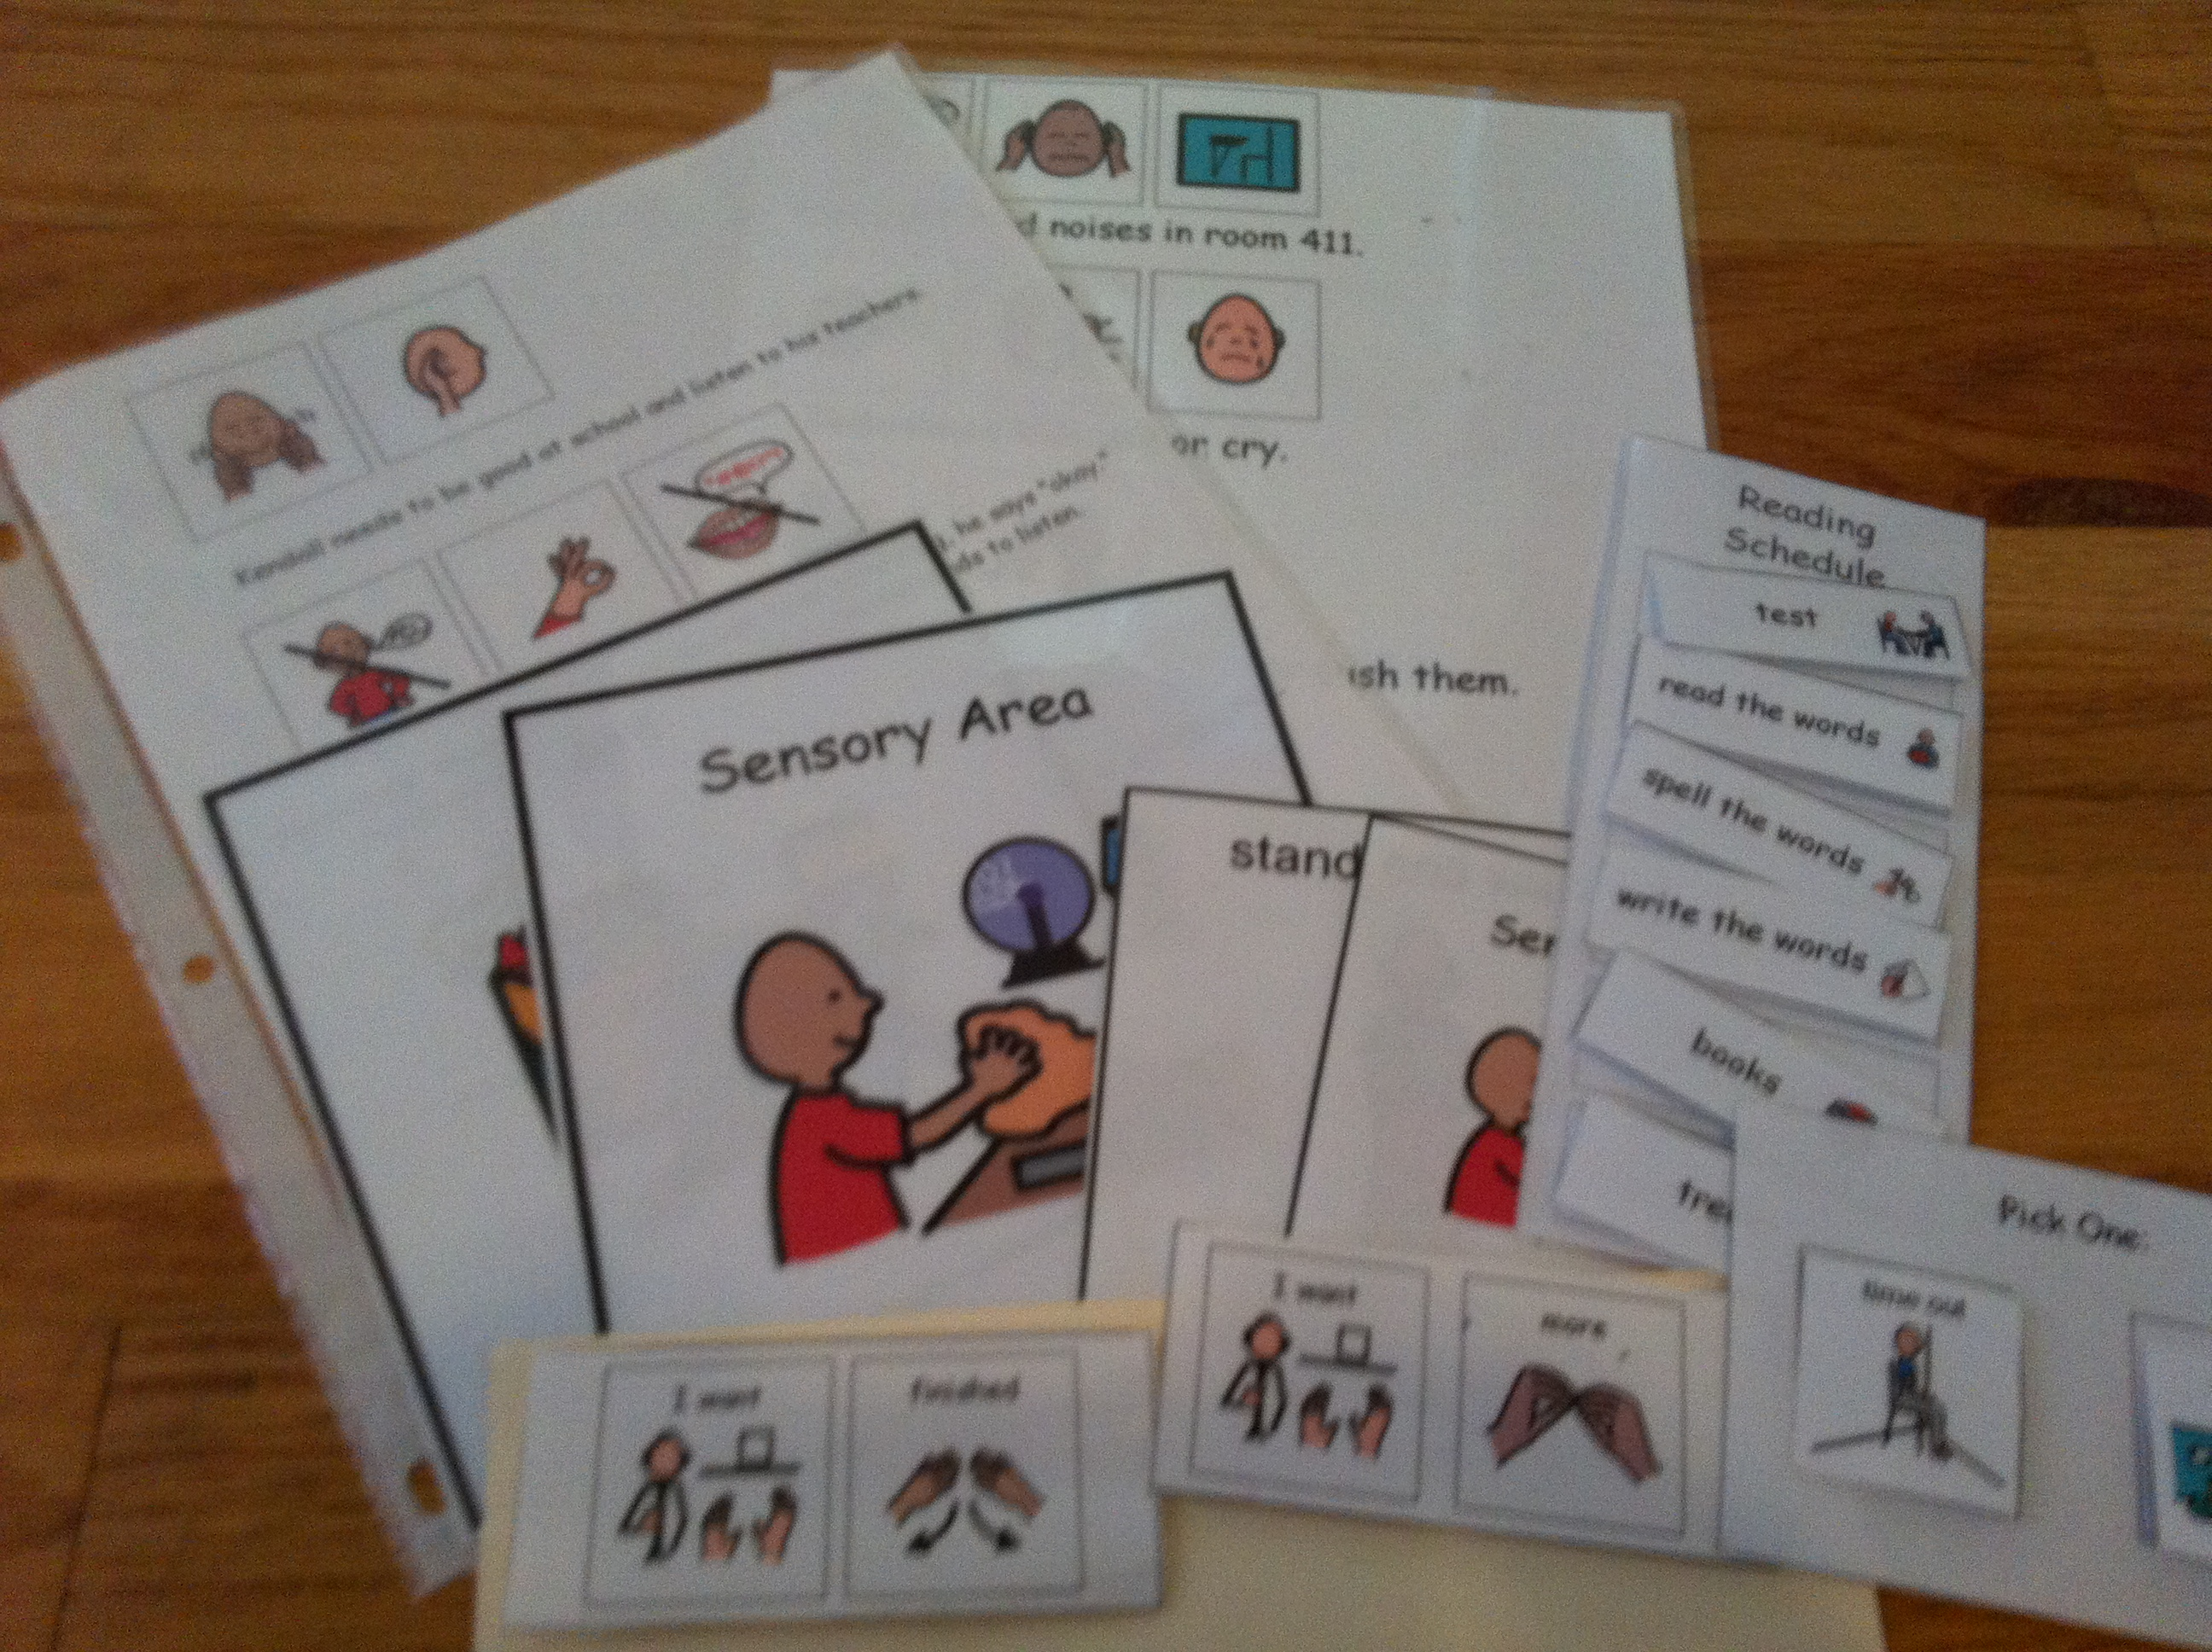 Toilet Visual Aid Resource Set Learning Support s- Autism Pre-School SEND ASD